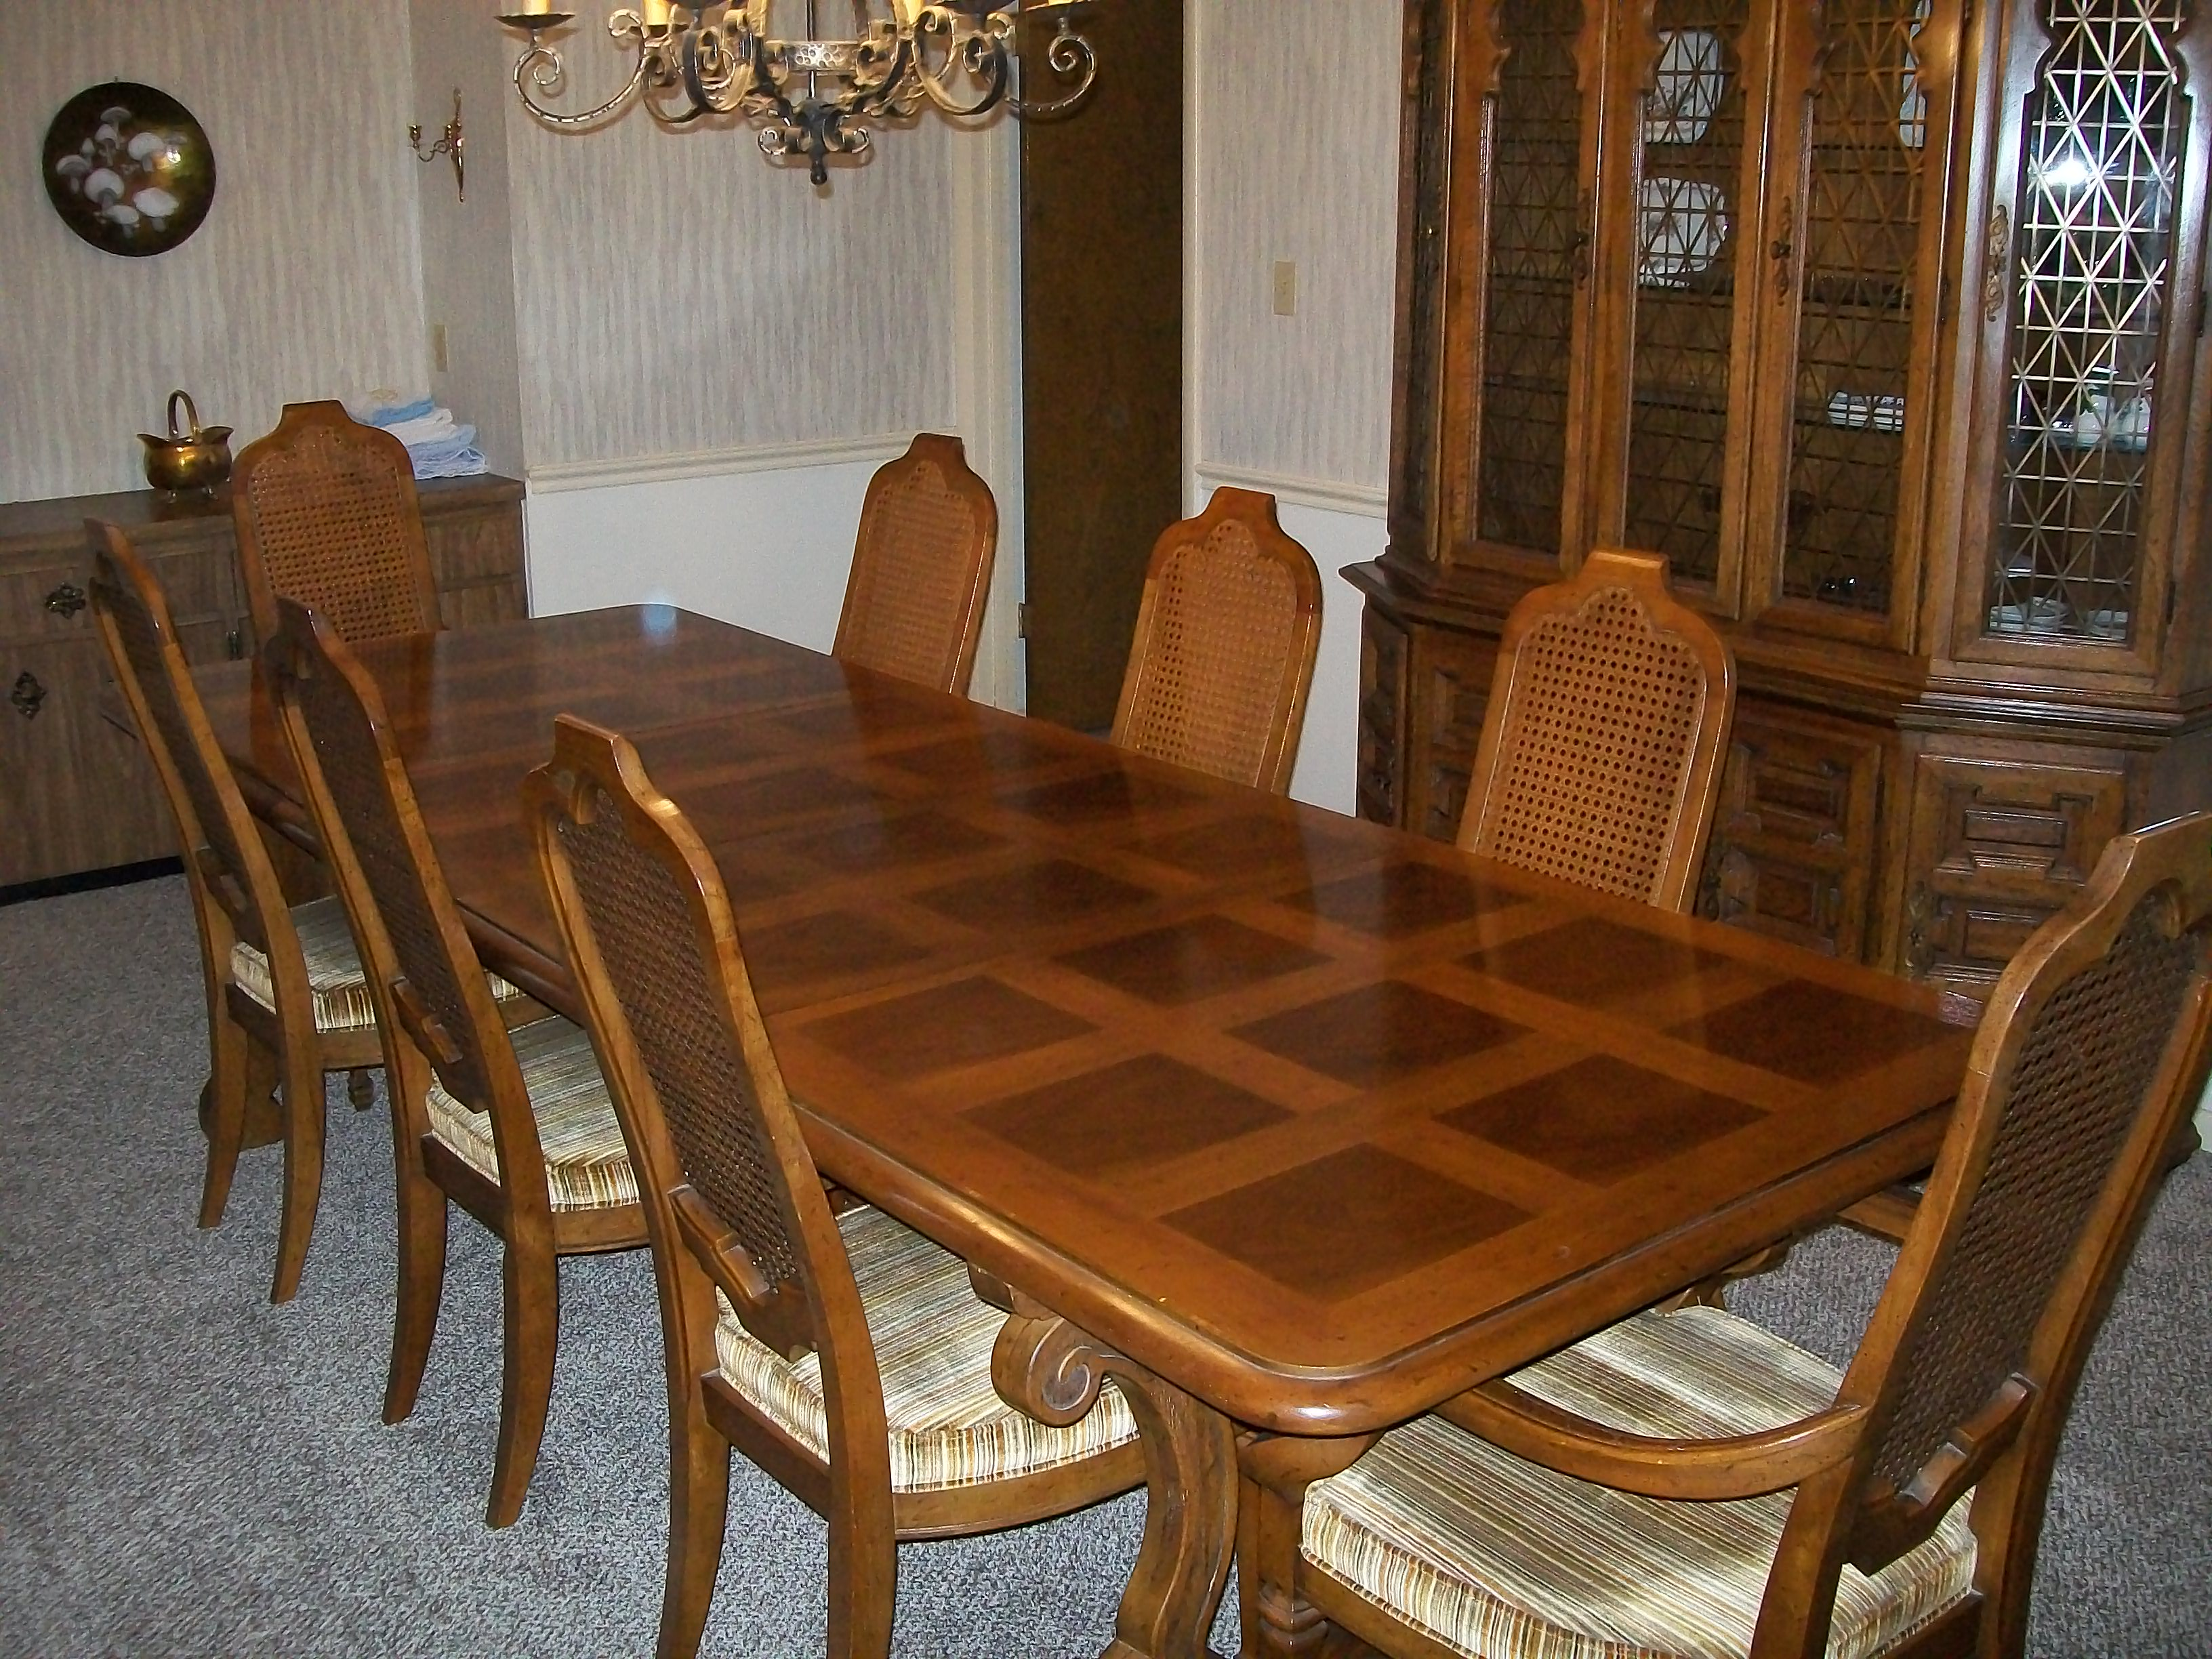 American Heritage Dining Room Table With Eight Chairs And Two  Leafs...including Table Pads, 1970!